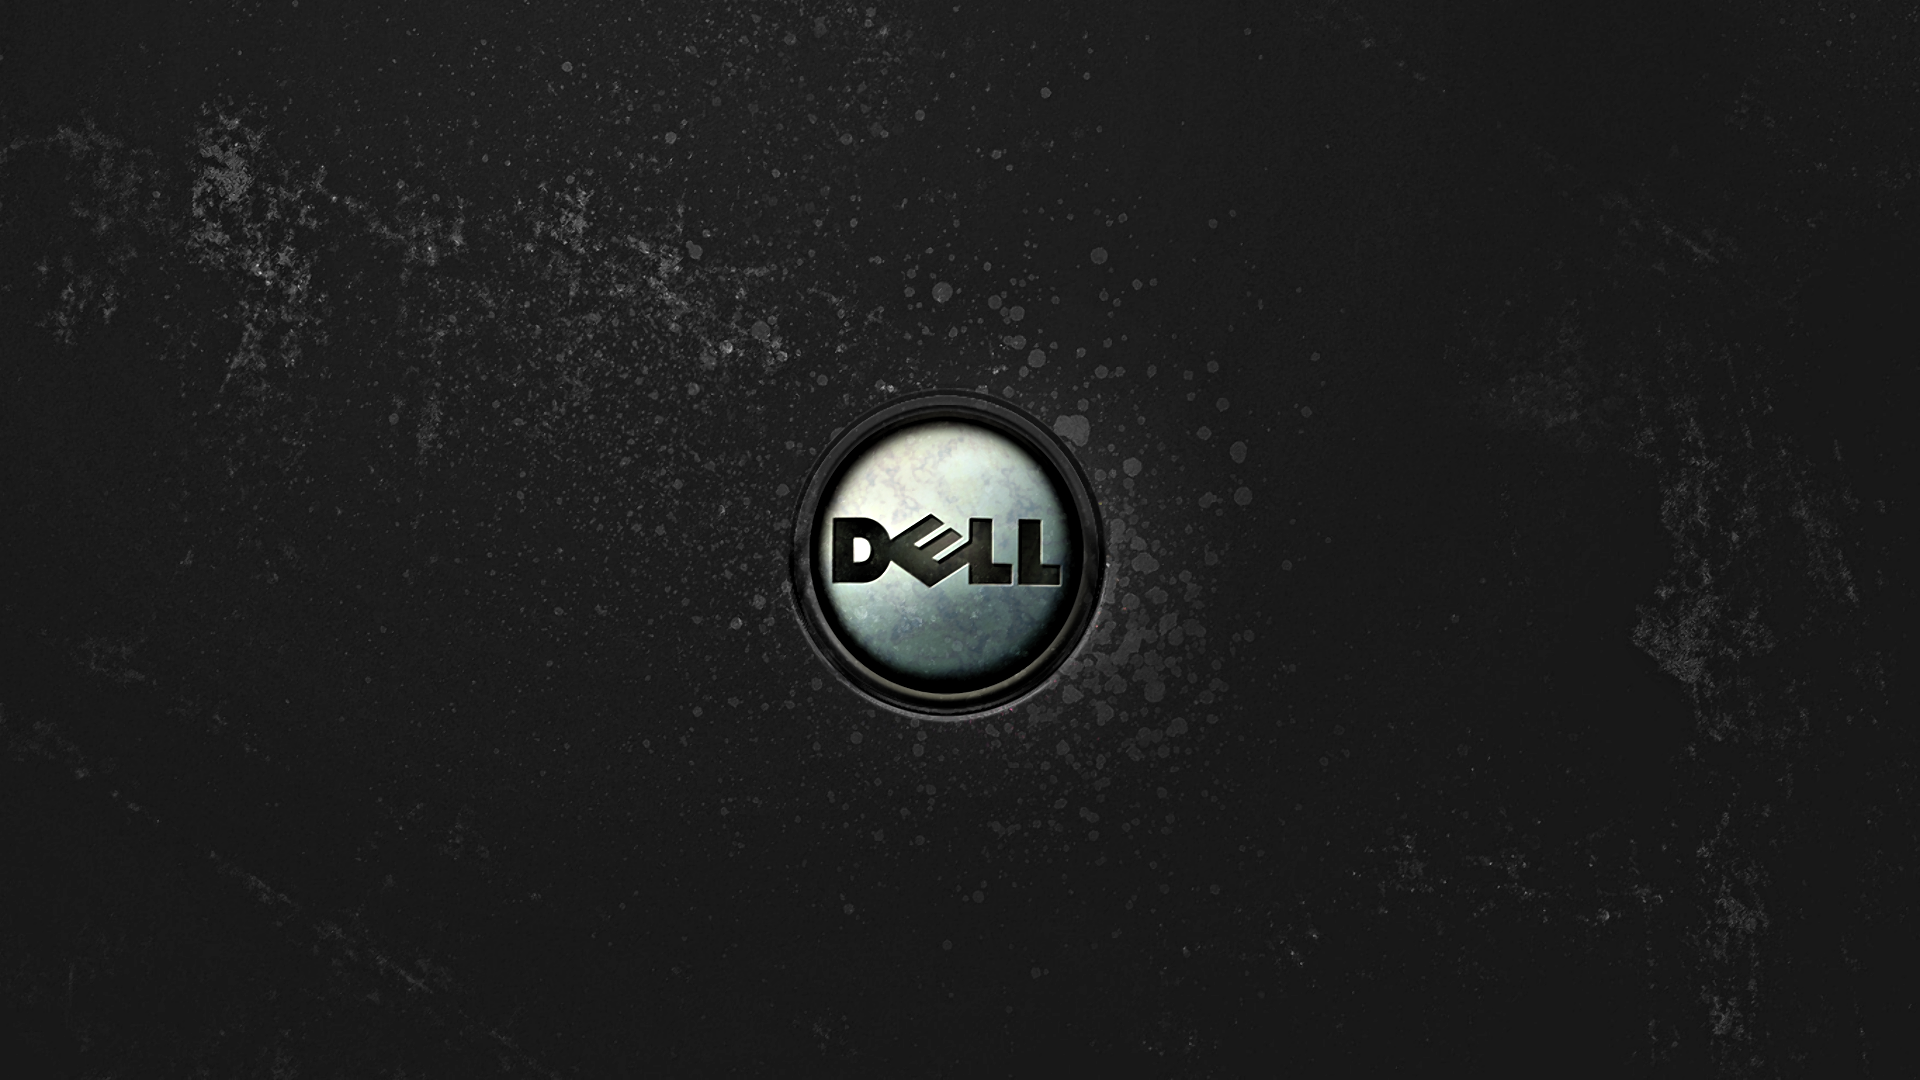 Dell 4K Wallpaper - WallpaperSafari